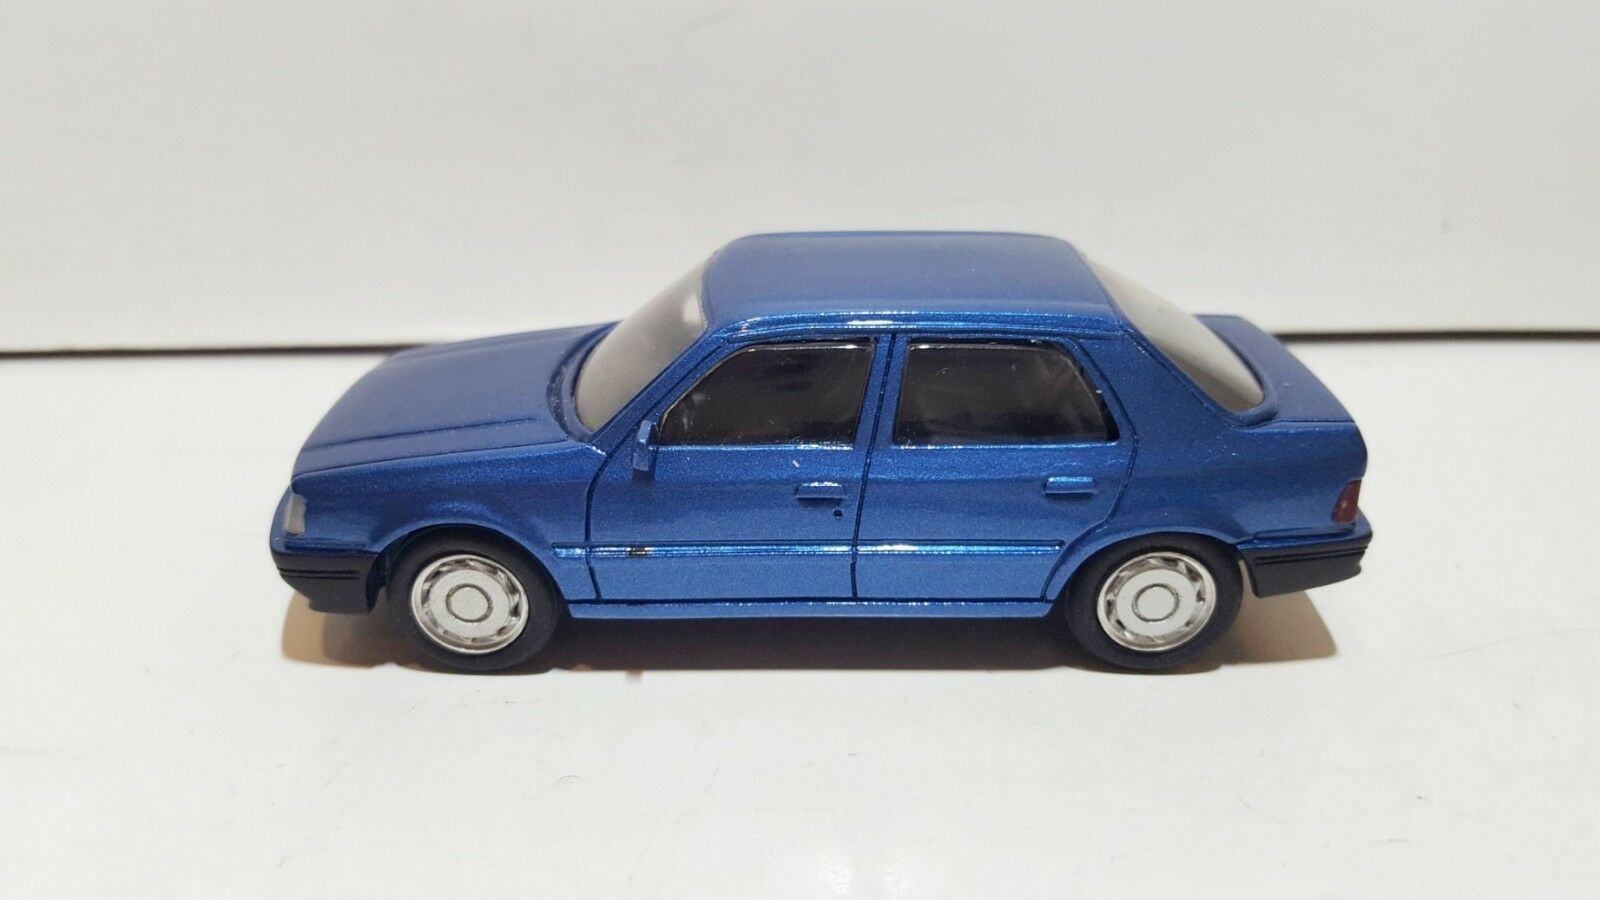 PARADCAR 56 France Resin Peugeot 309 Hand made 1 43 mint no box RARE SUPER